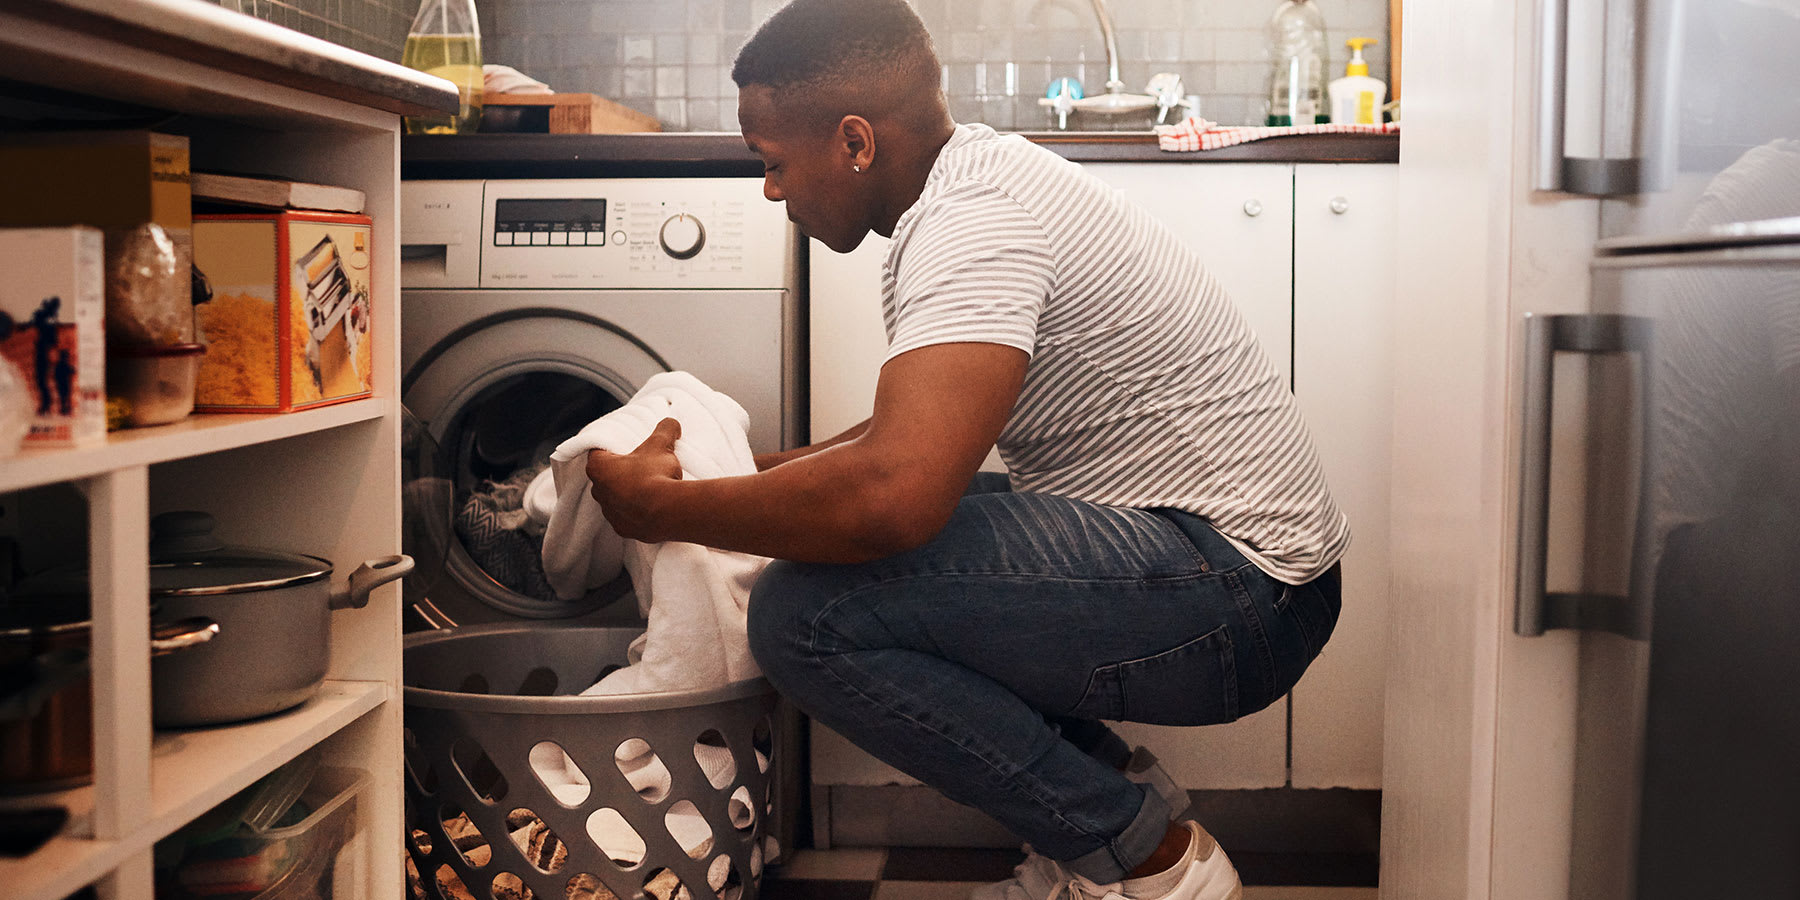 Man in his mid-20s loading the washing machine in his apartment